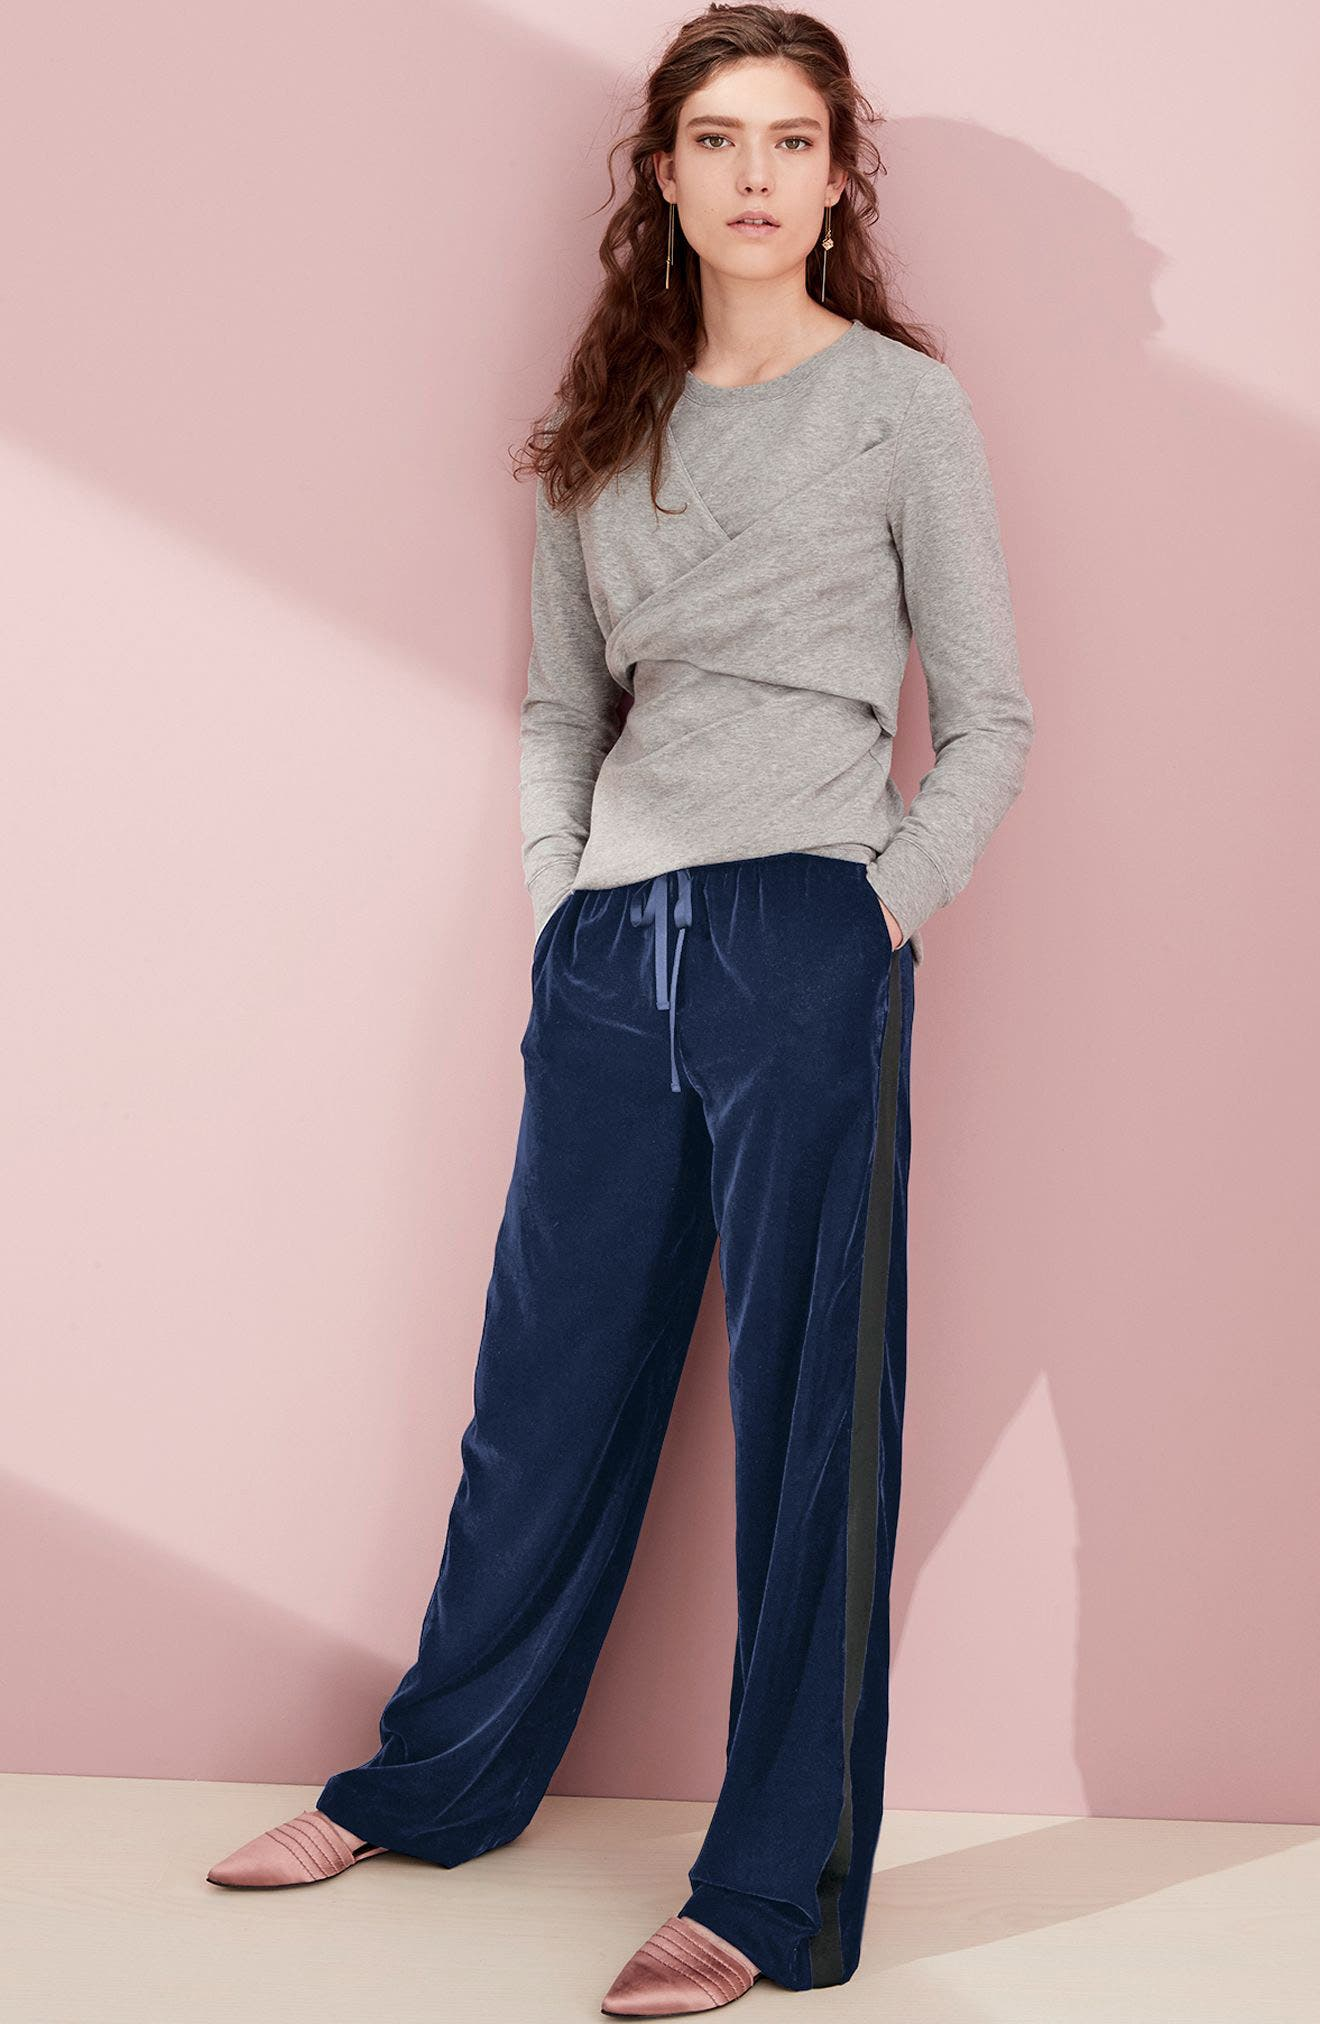 Trouvé Sweatshirt & Pants Outfit with Accessories